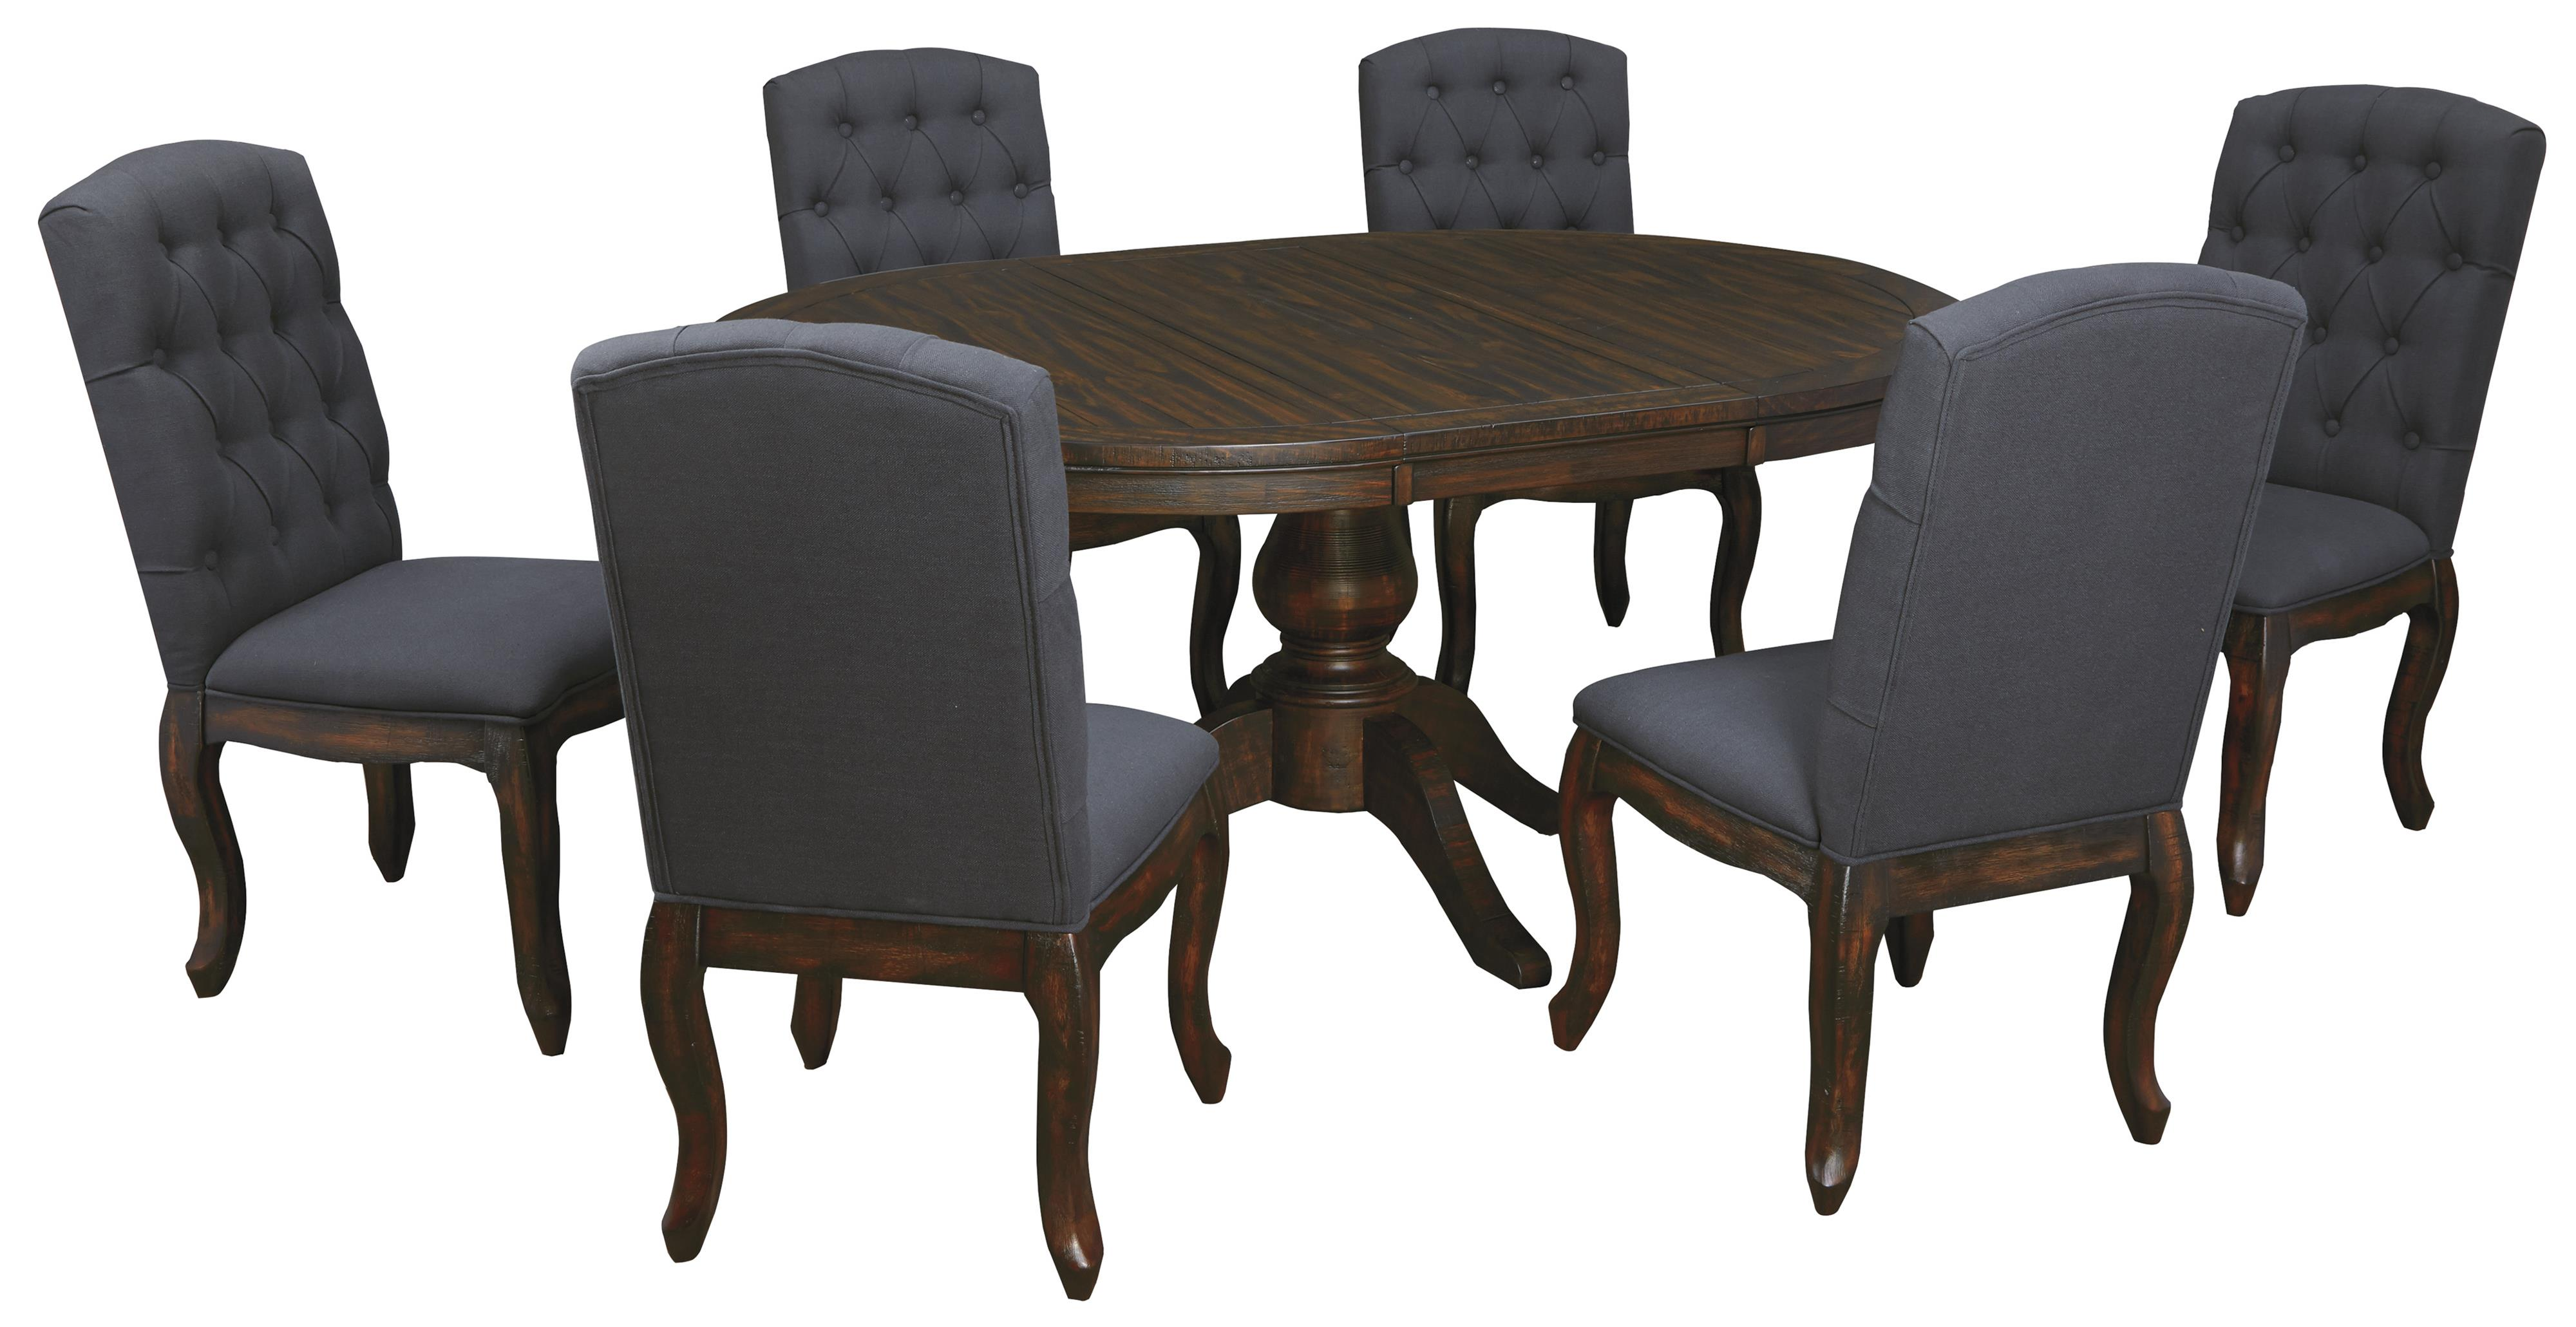 7-Piece Oval Dining Table Set